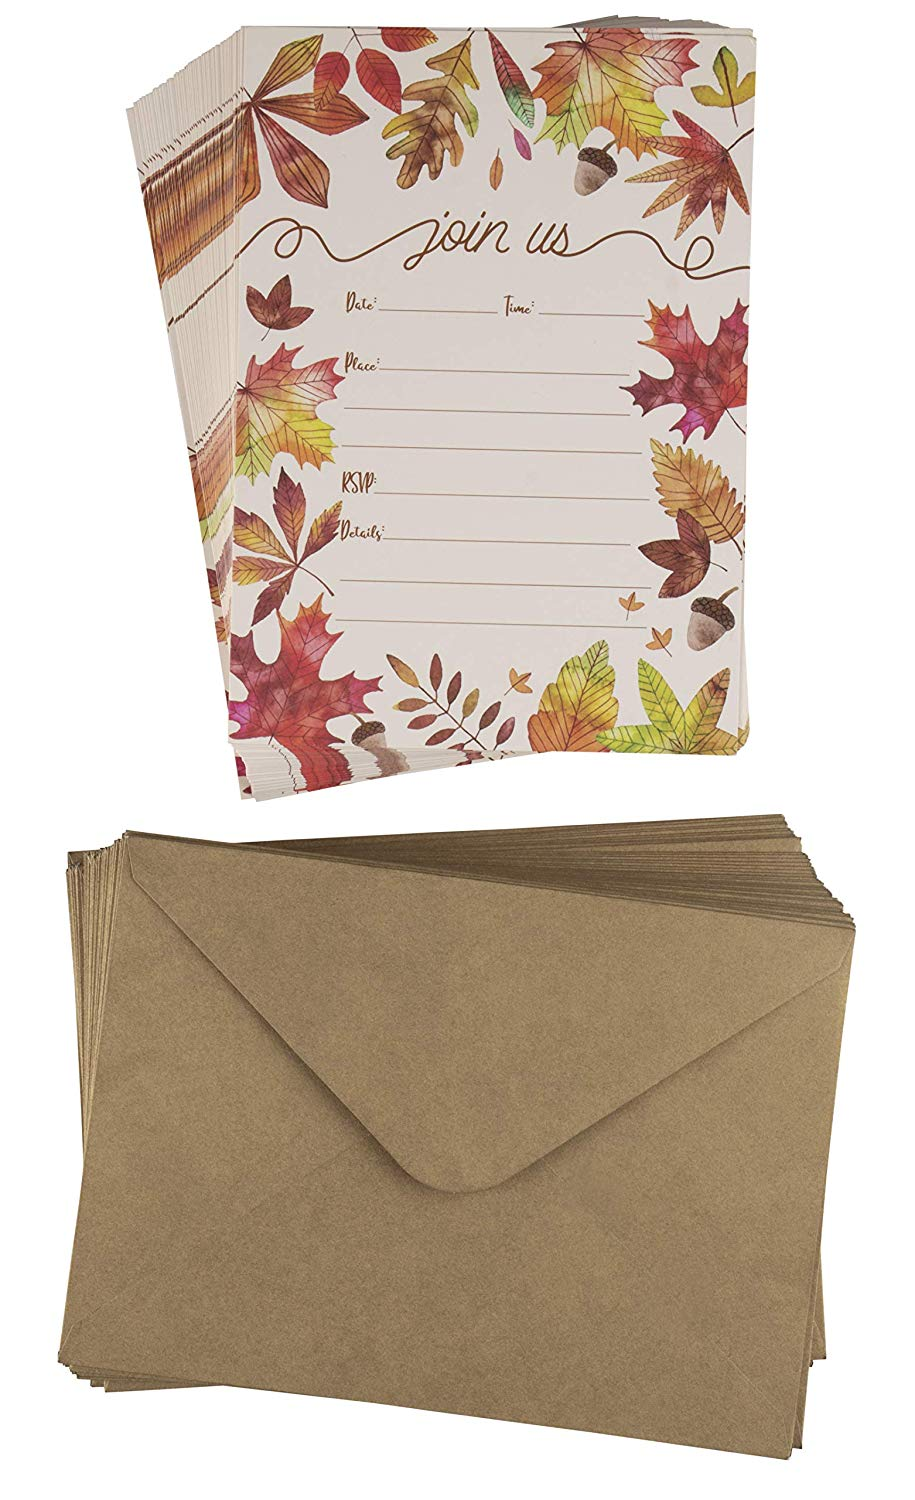 Fall Invitation Cards – 50-Pack Thanksgiving Dinner Party Invite Cards, Fill-in Invitations with Envelopes for Fall Themed Wedding, Baby Shower, Autumn Leaves Designs, 5 x 7 inches